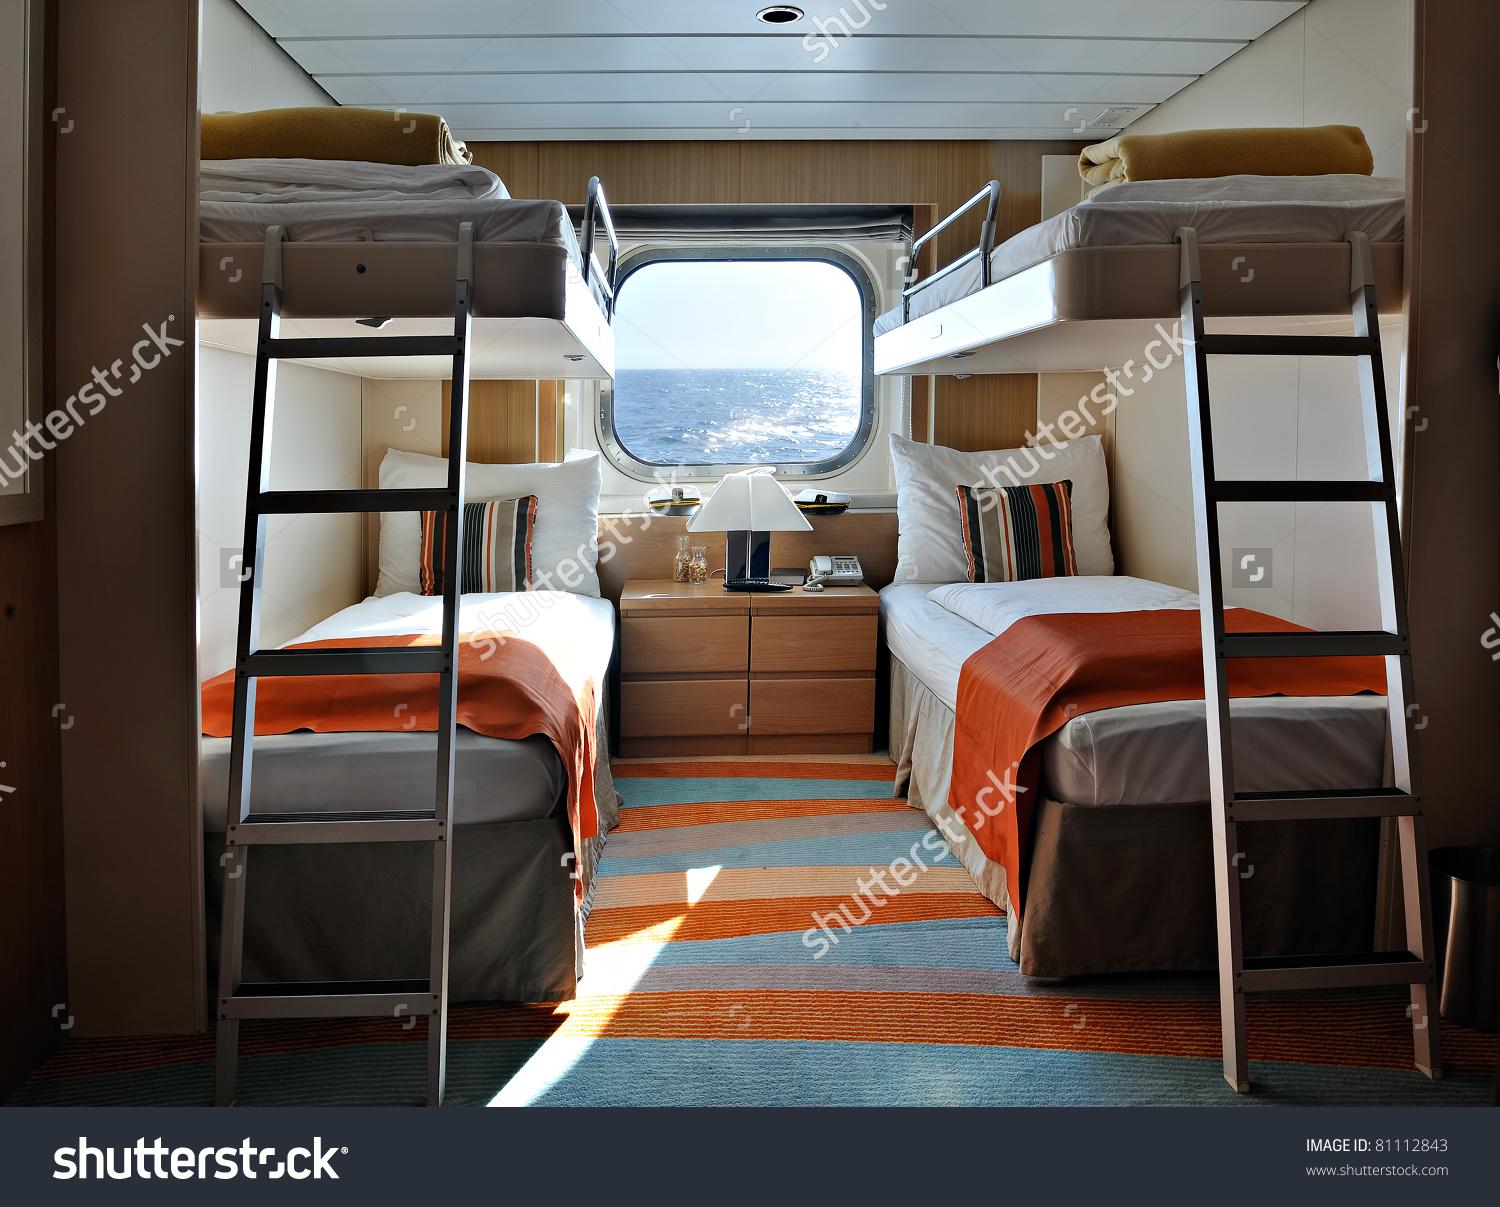 Interior Living Cabin On Cruise Ship Stock Photo 81112843.